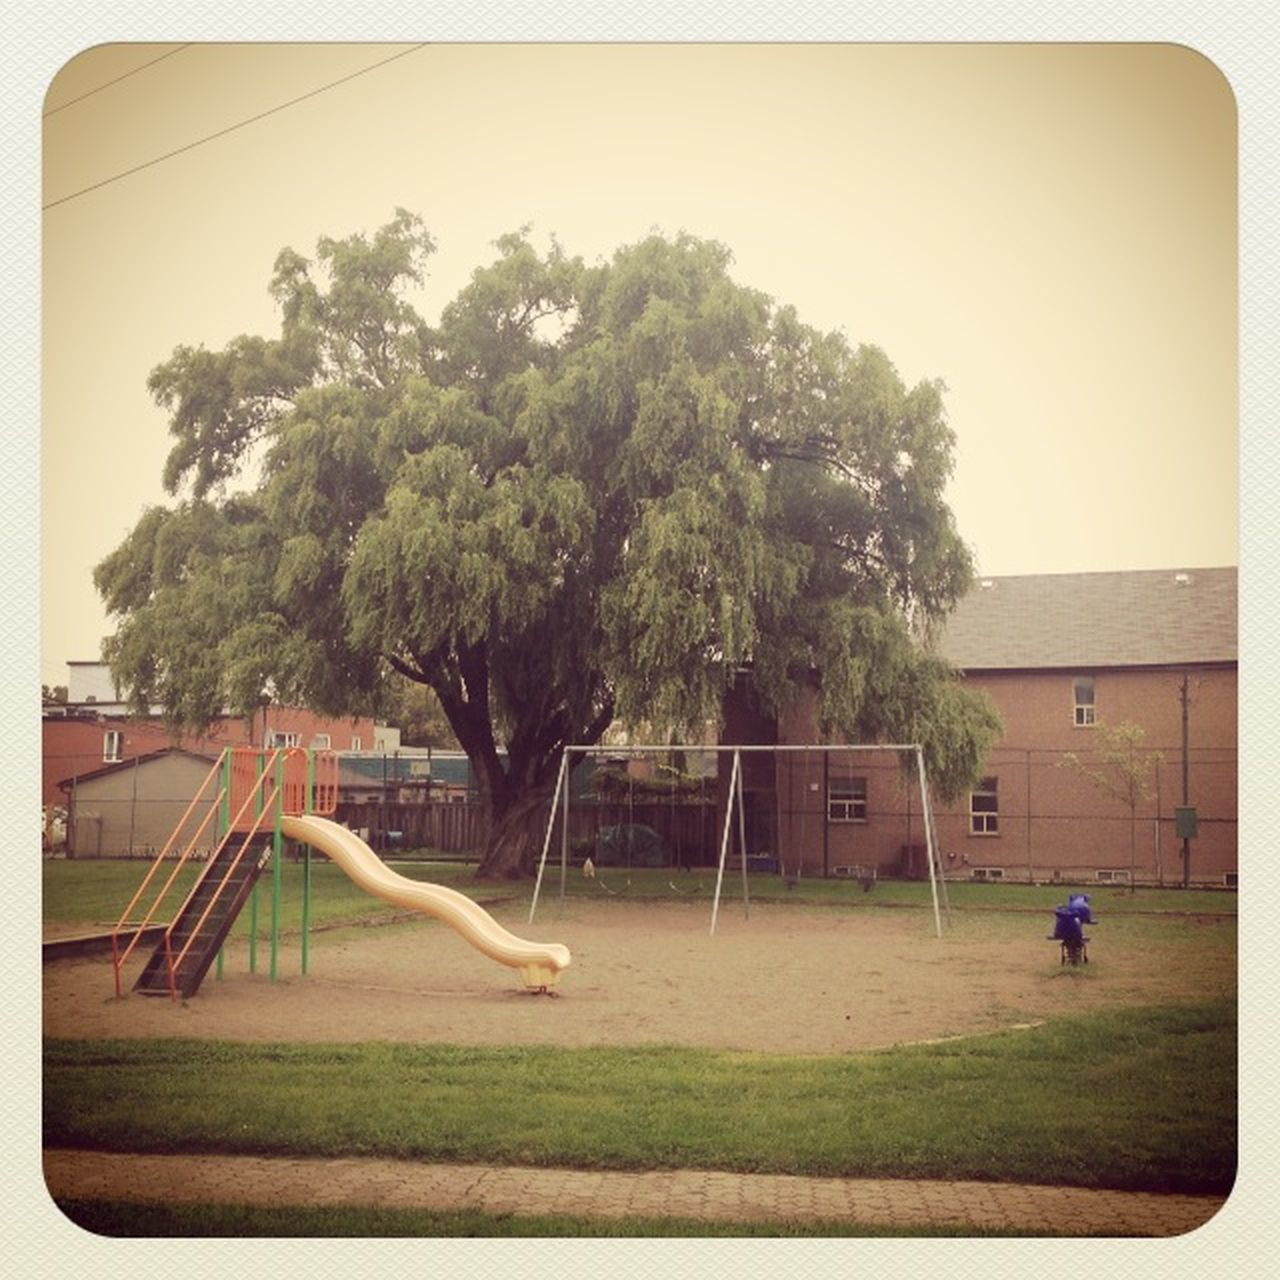 playground, tree, slide, grass, childhood, park - man made space, outdoor play equipment, playing, outdoors, hanging, day, sky, no people, nature